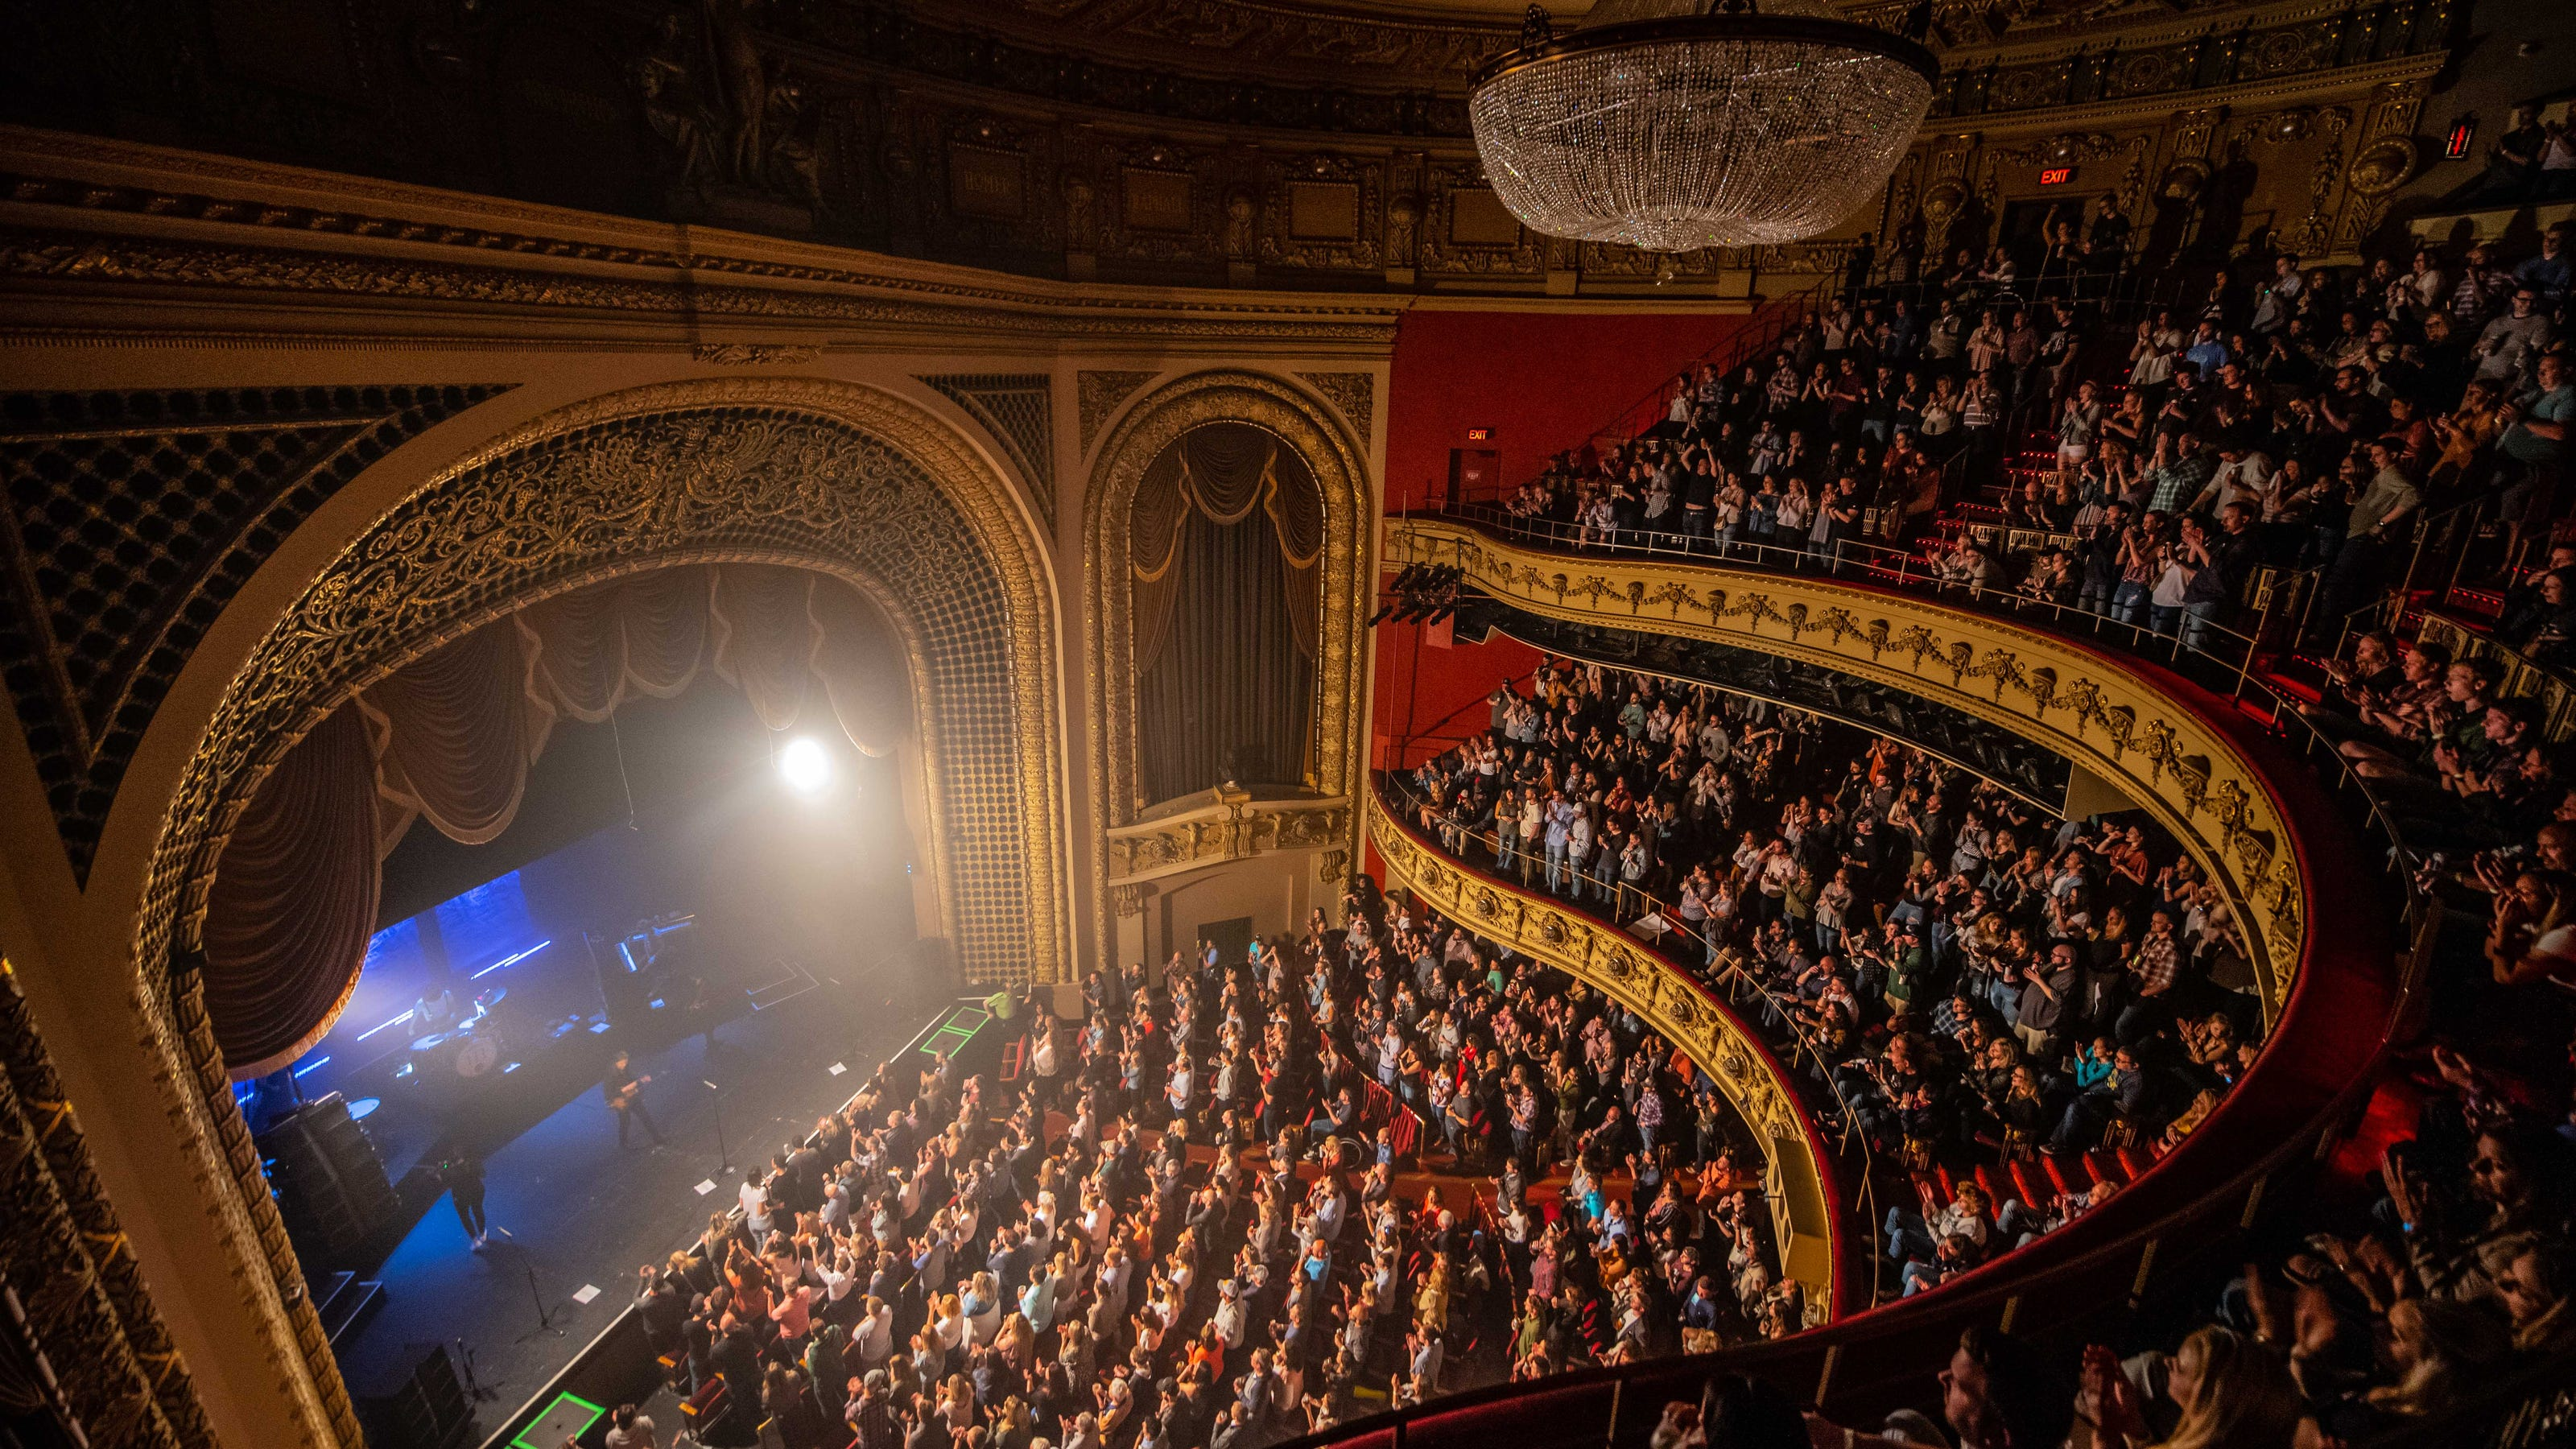 Pabst Theater Christmas Story Same As 2021? John Mcgivern Holiday Show Pabst Theater To Reopen For First Time In 8 Months